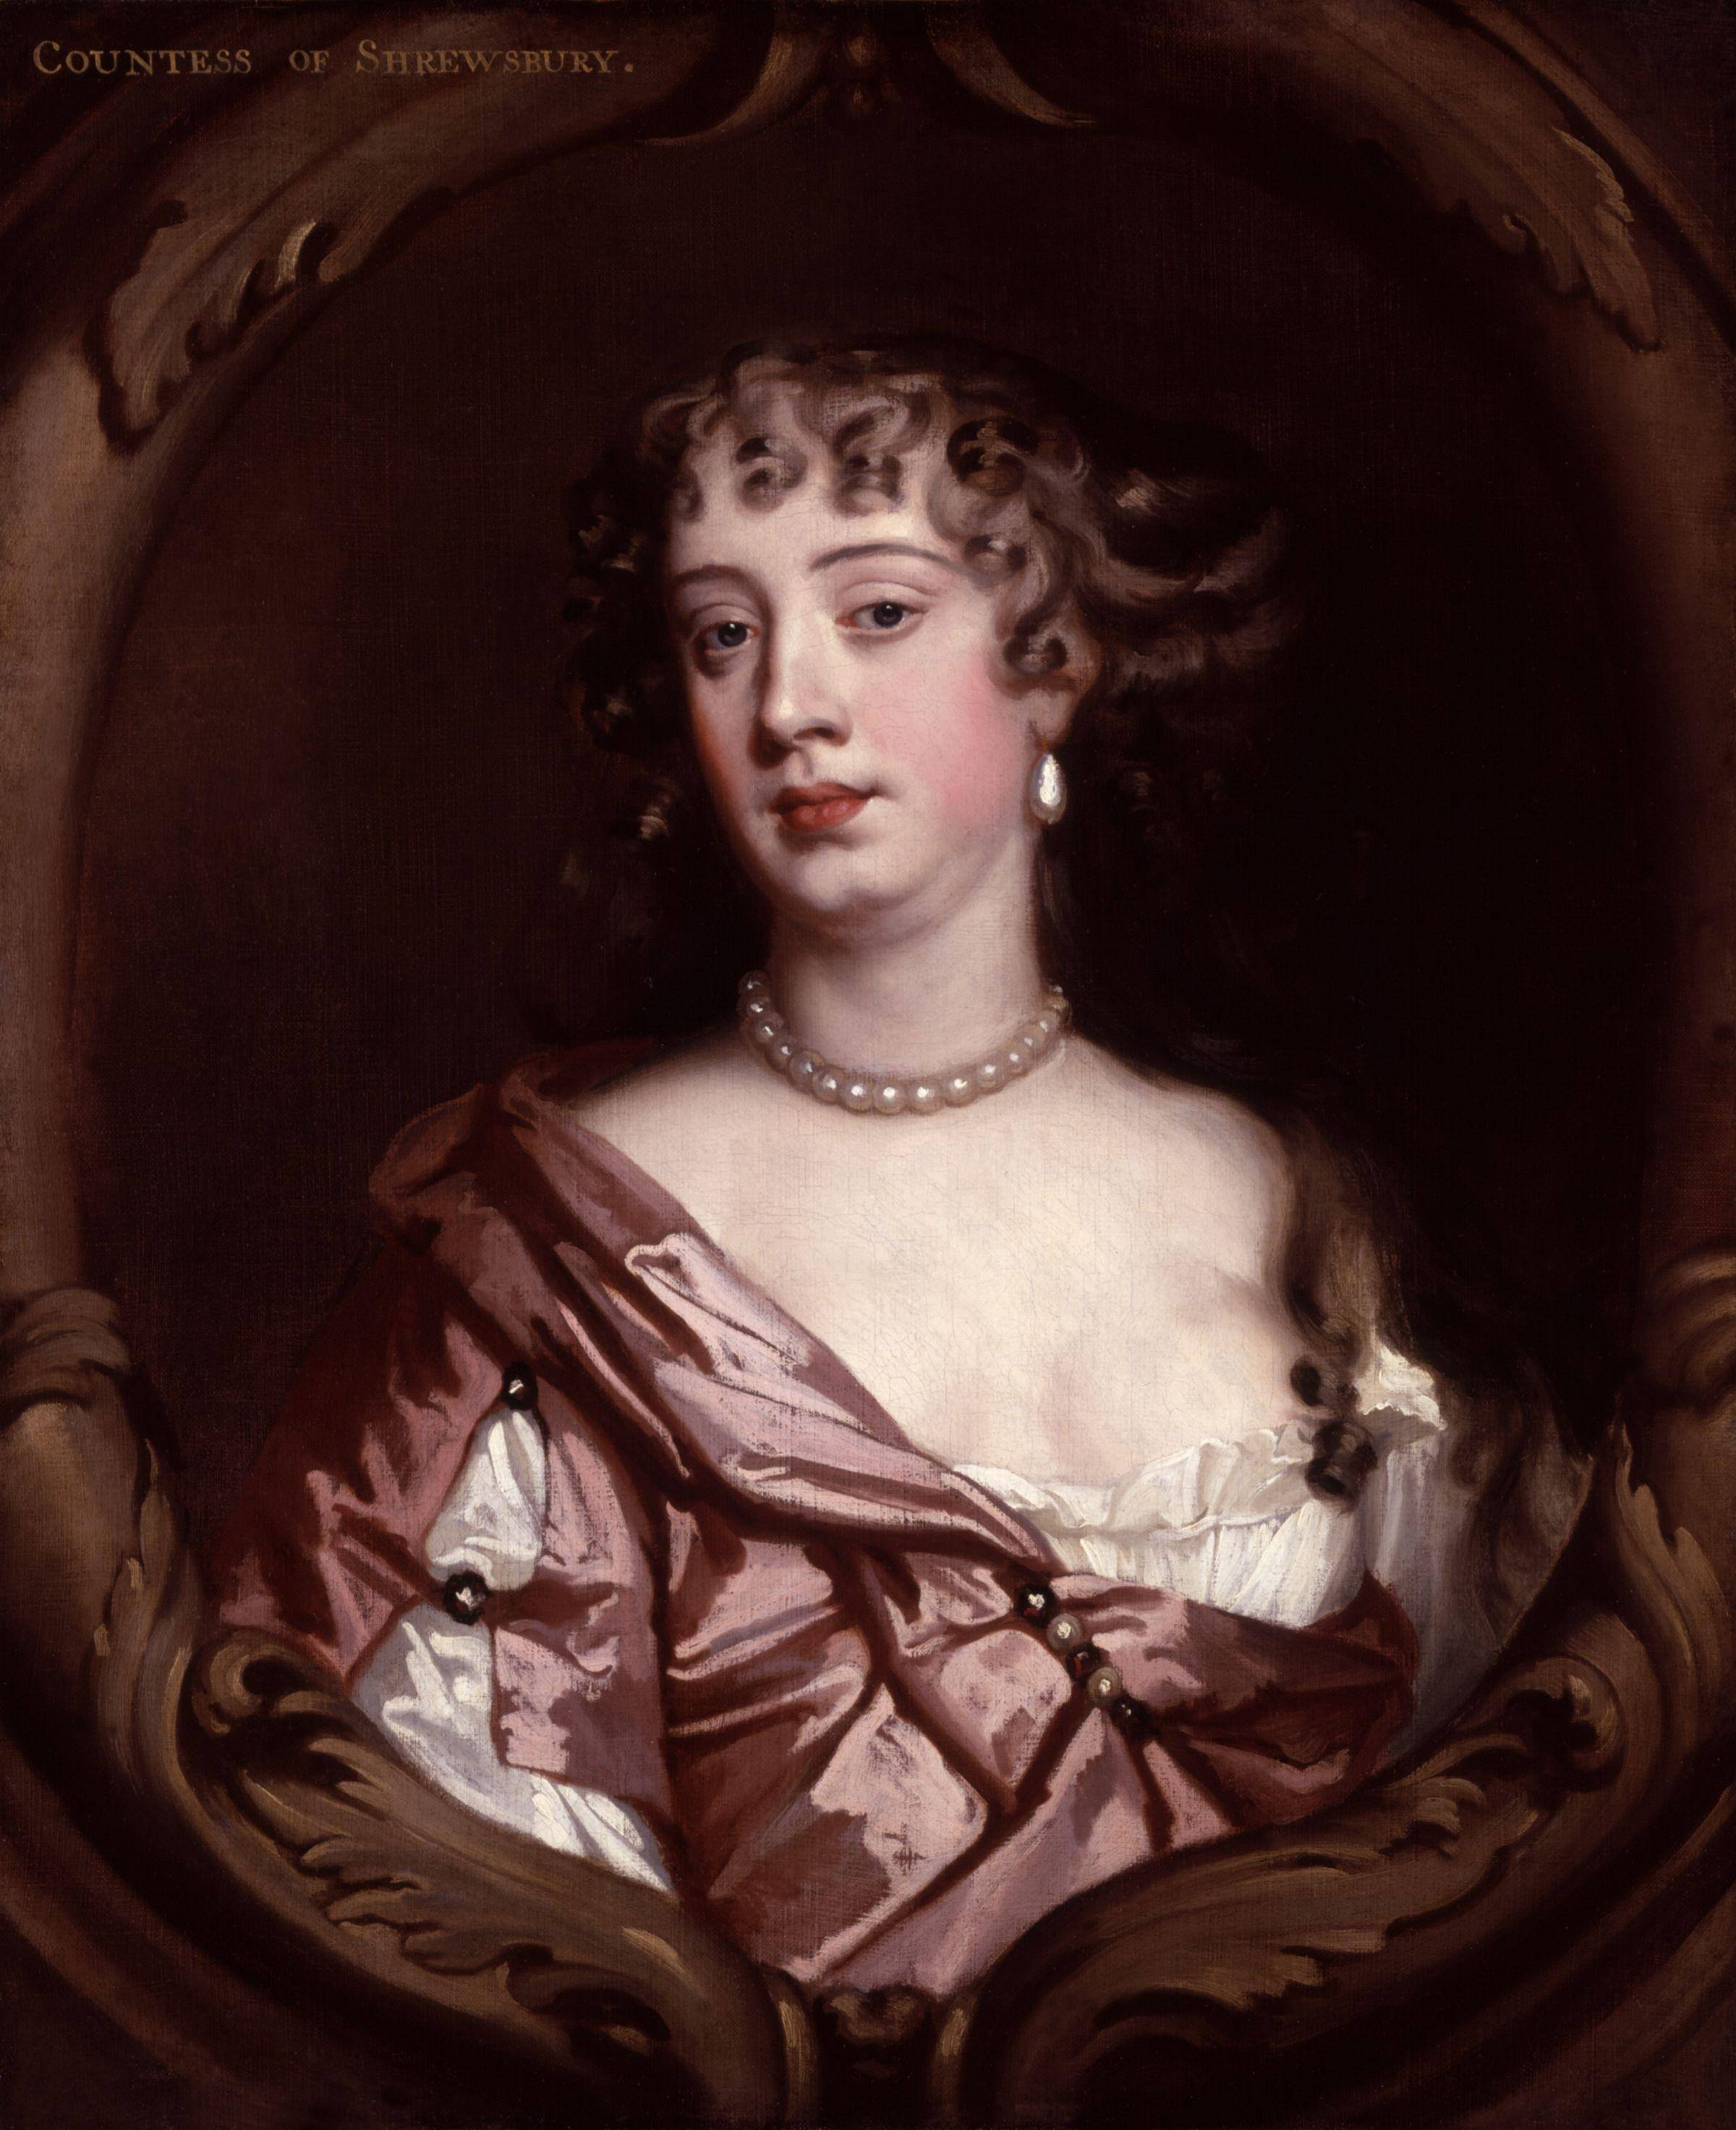 Anna Maria countess of shrewsbury